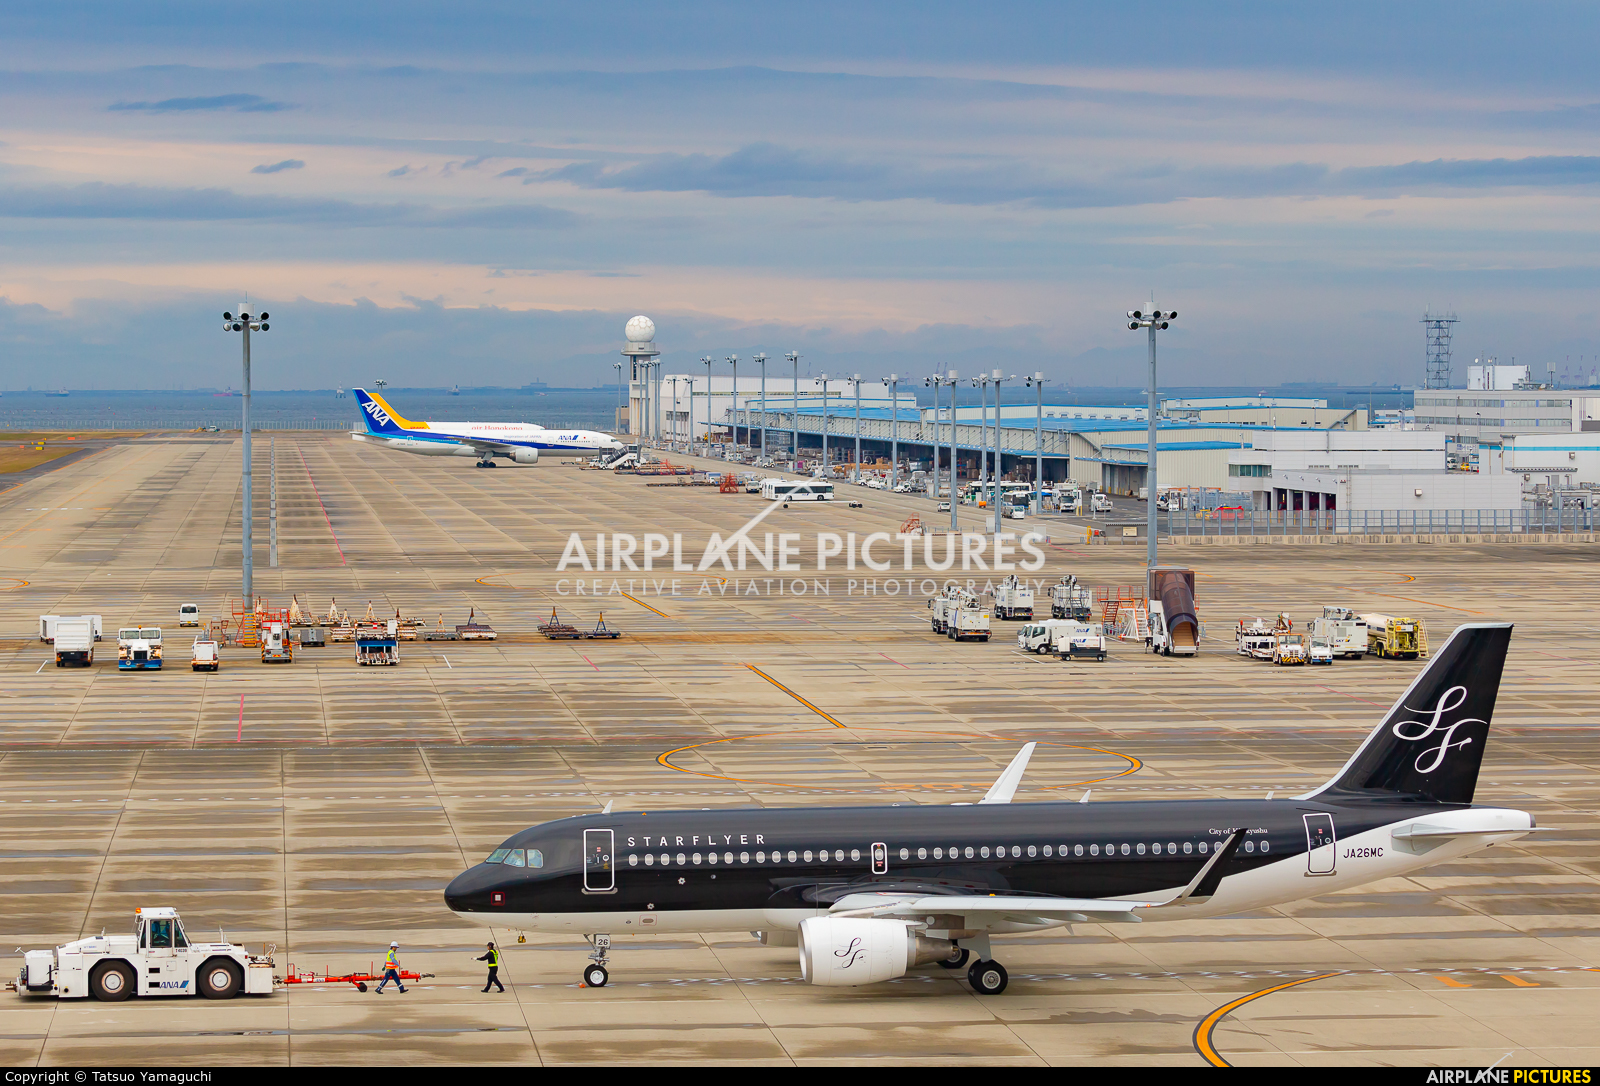 Starflyer JA26MC aircraft at Chubu Centrair Intl